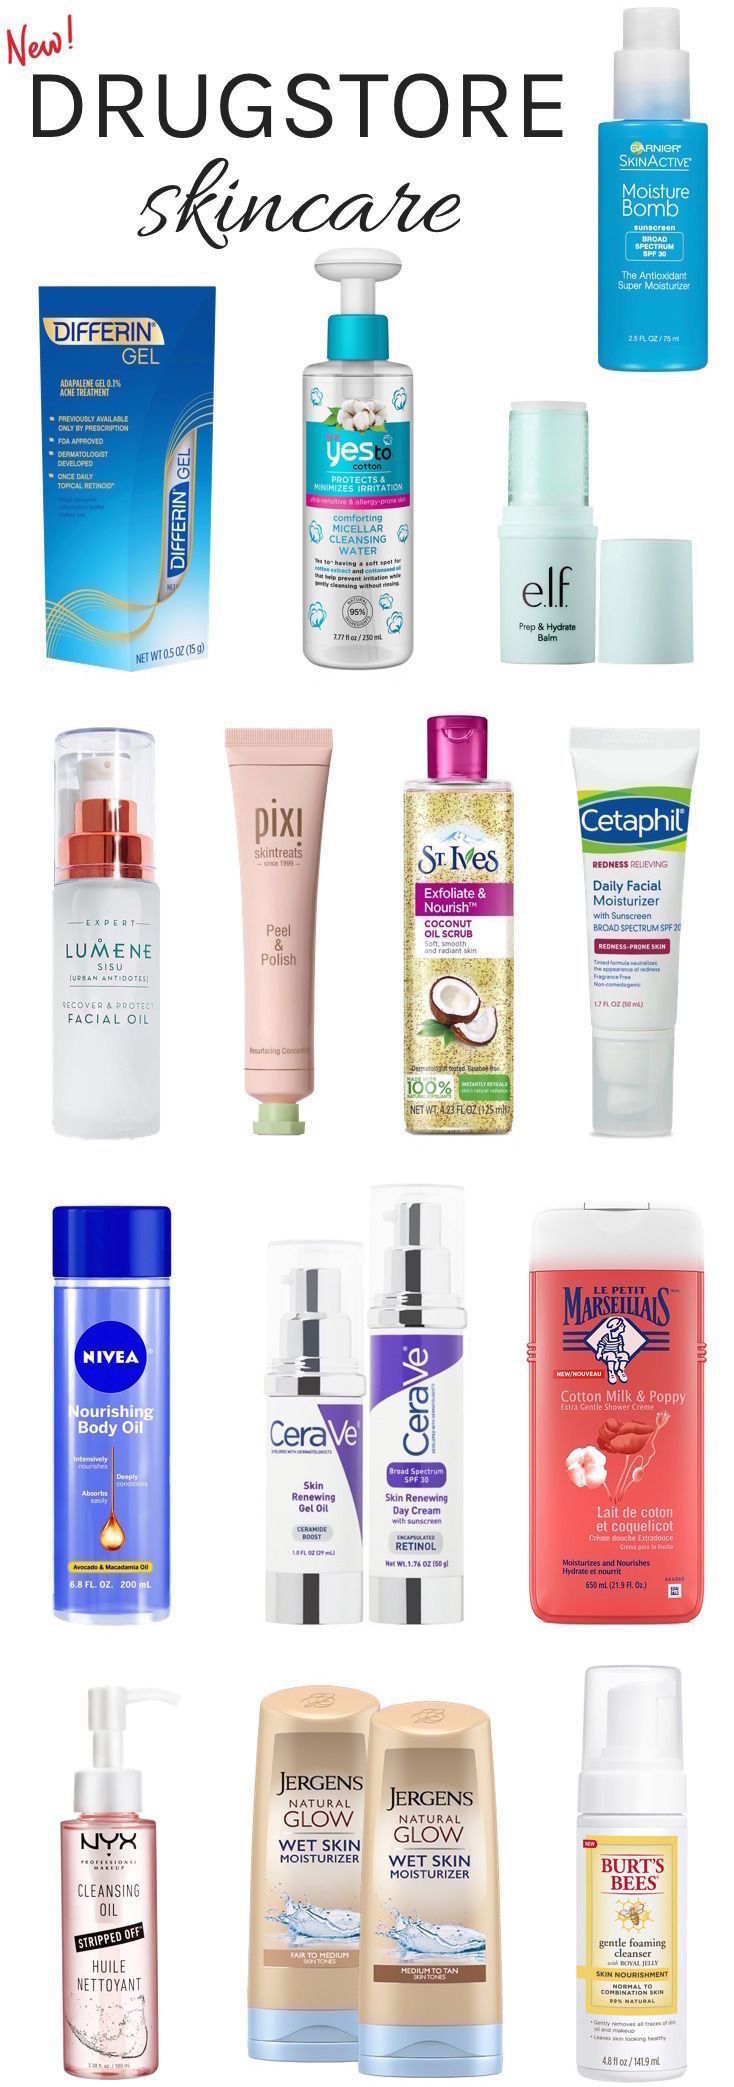 20 new drugstore beauty buys brimming with innovative skincare ingredients, yet easily affordable to help you get better skin even on a tight budget!